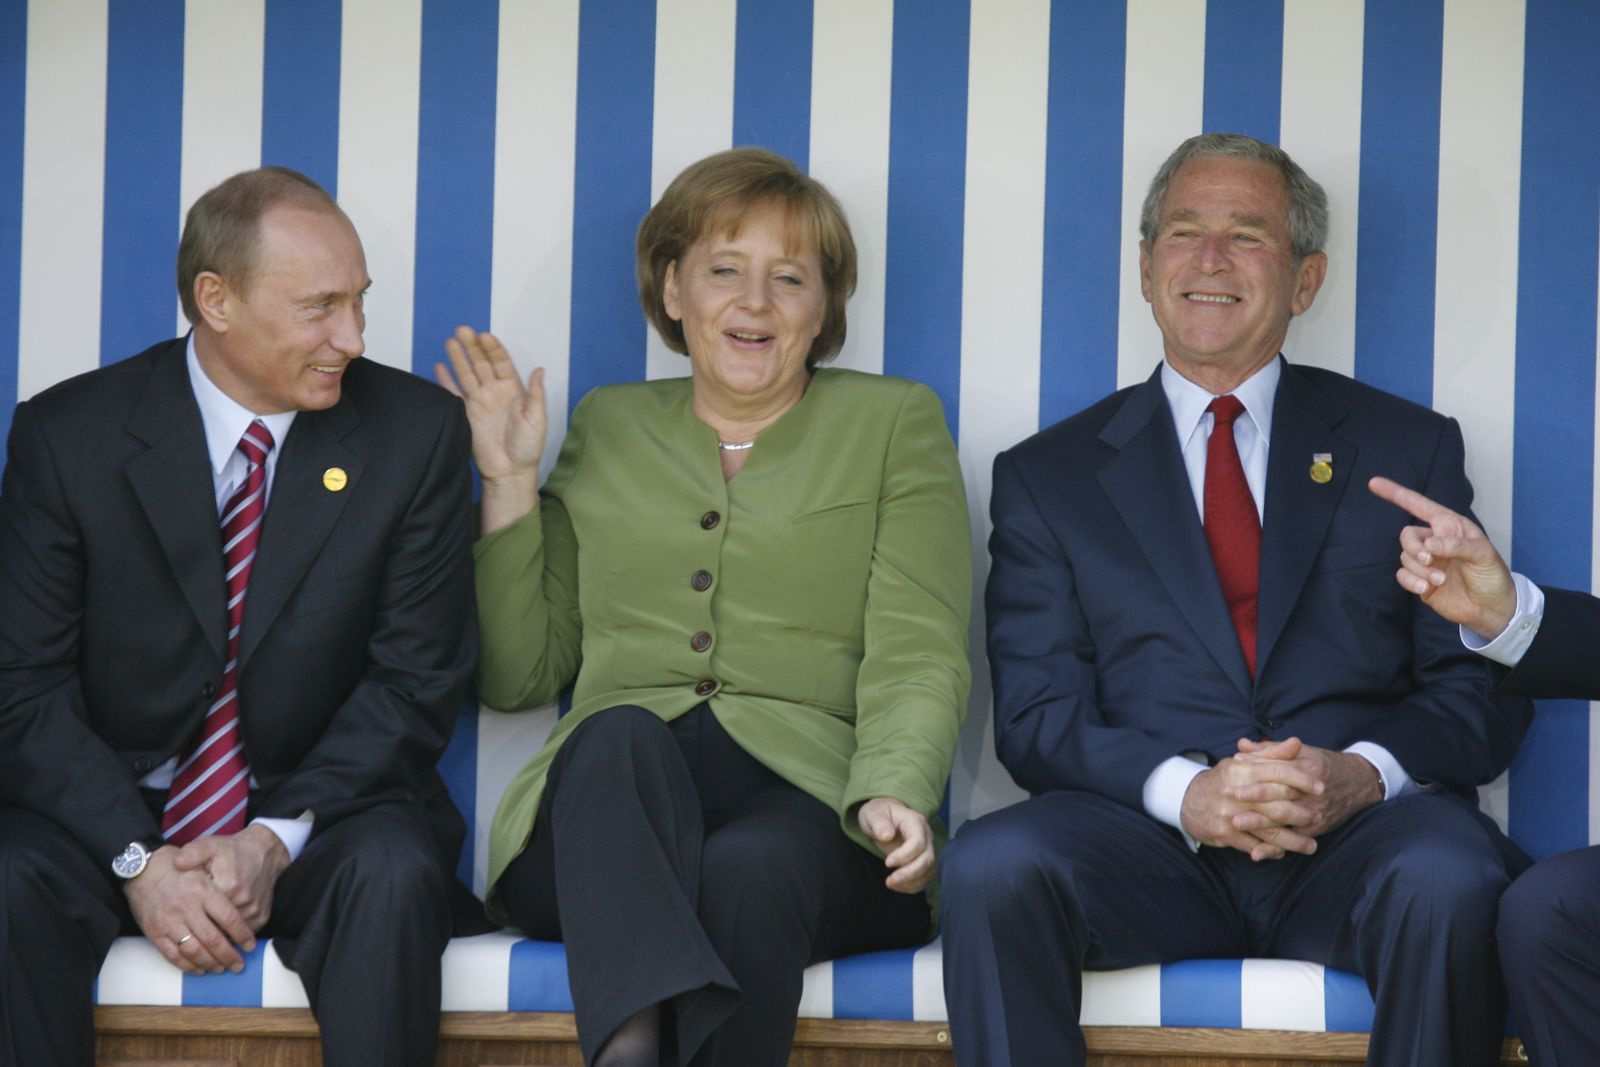 The G8 Heads of States are posing for a family photo in a huge deckchair In Heiligendamm, Germany On June 07, 2007-